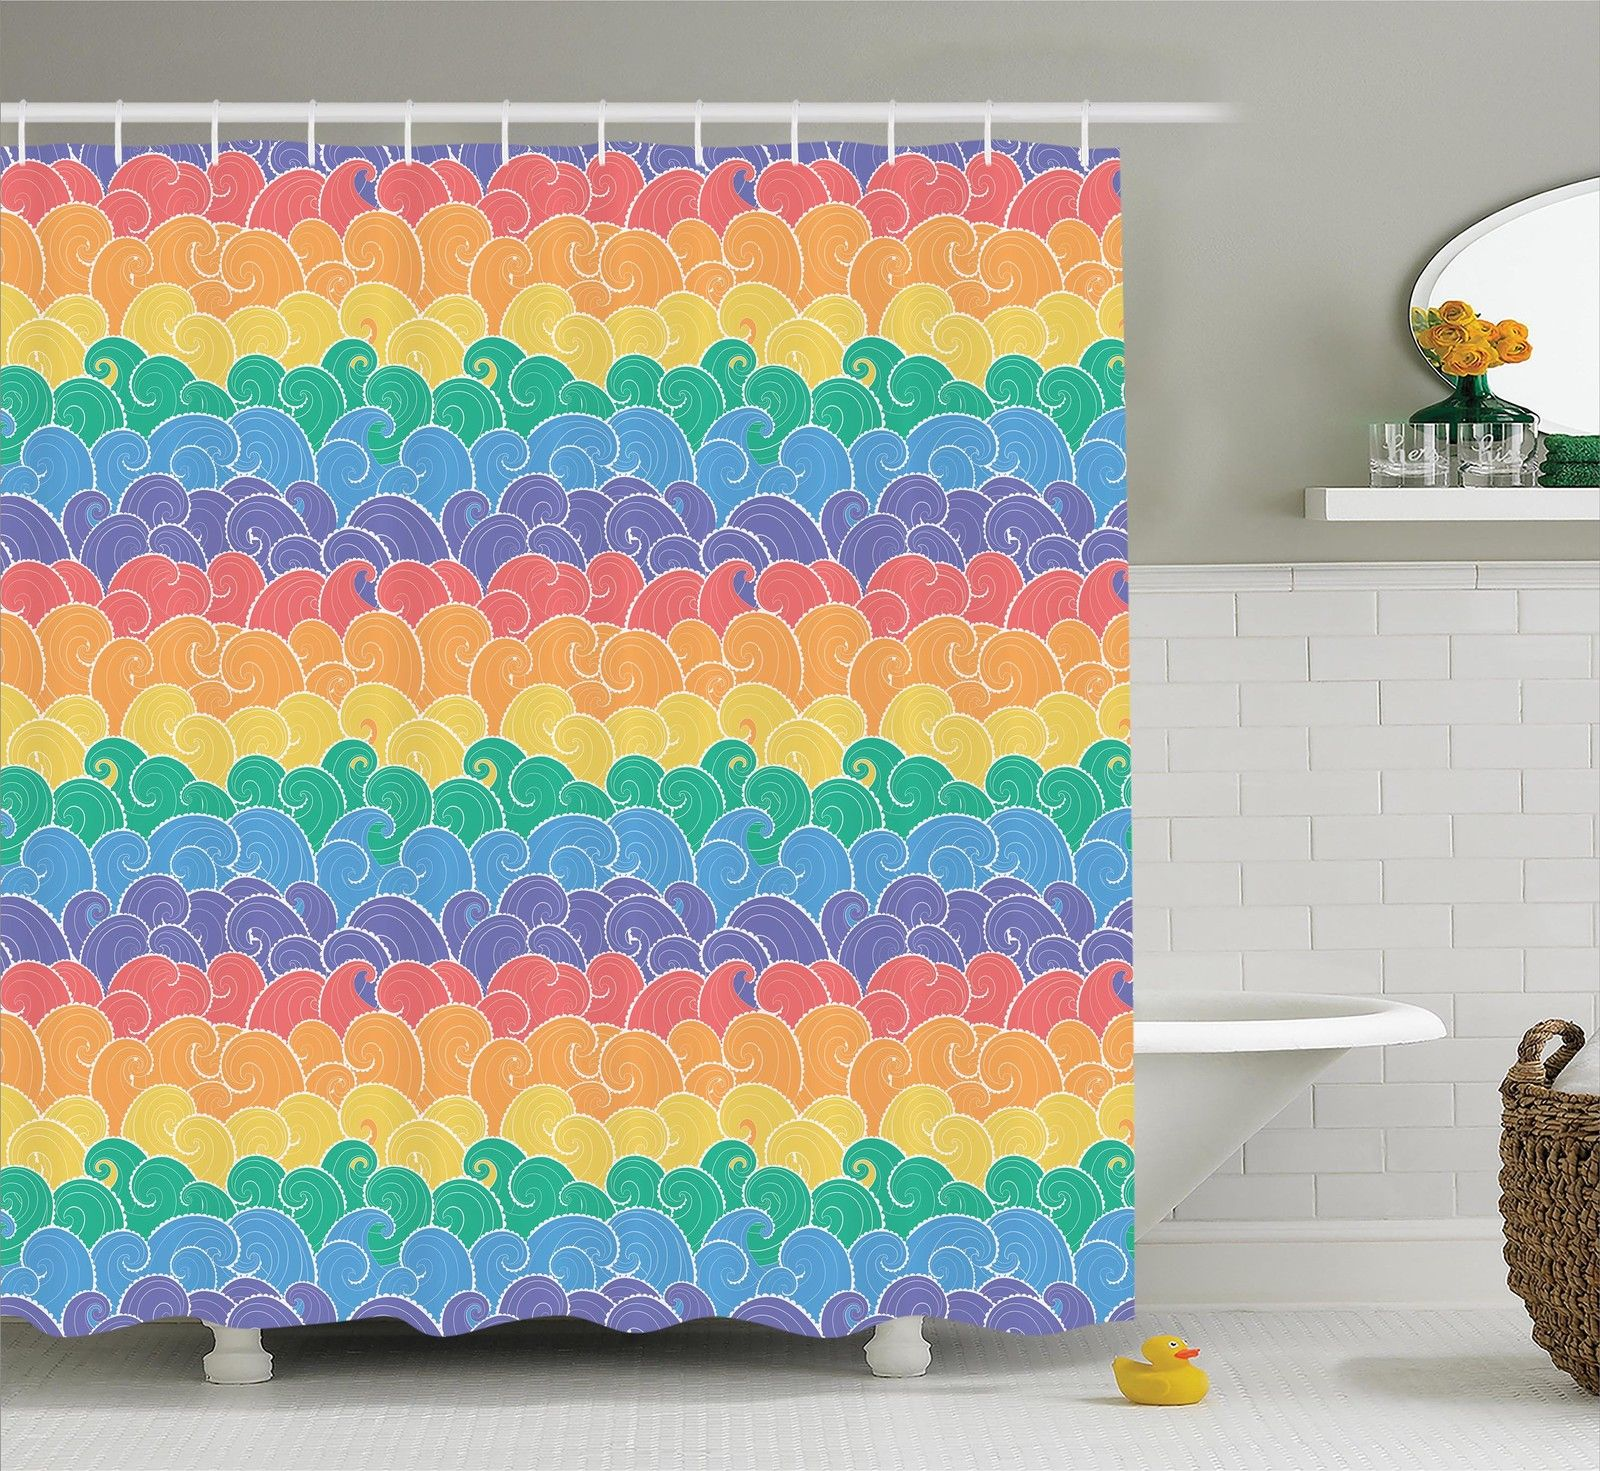 Nautical Decor  Colorful Waves Cartoon Sea Pattern In Rainbow Colors Fun Children Art Travel, Bathroom Accessories, 69W X 84L Inches Extra Long, By Ambesonne